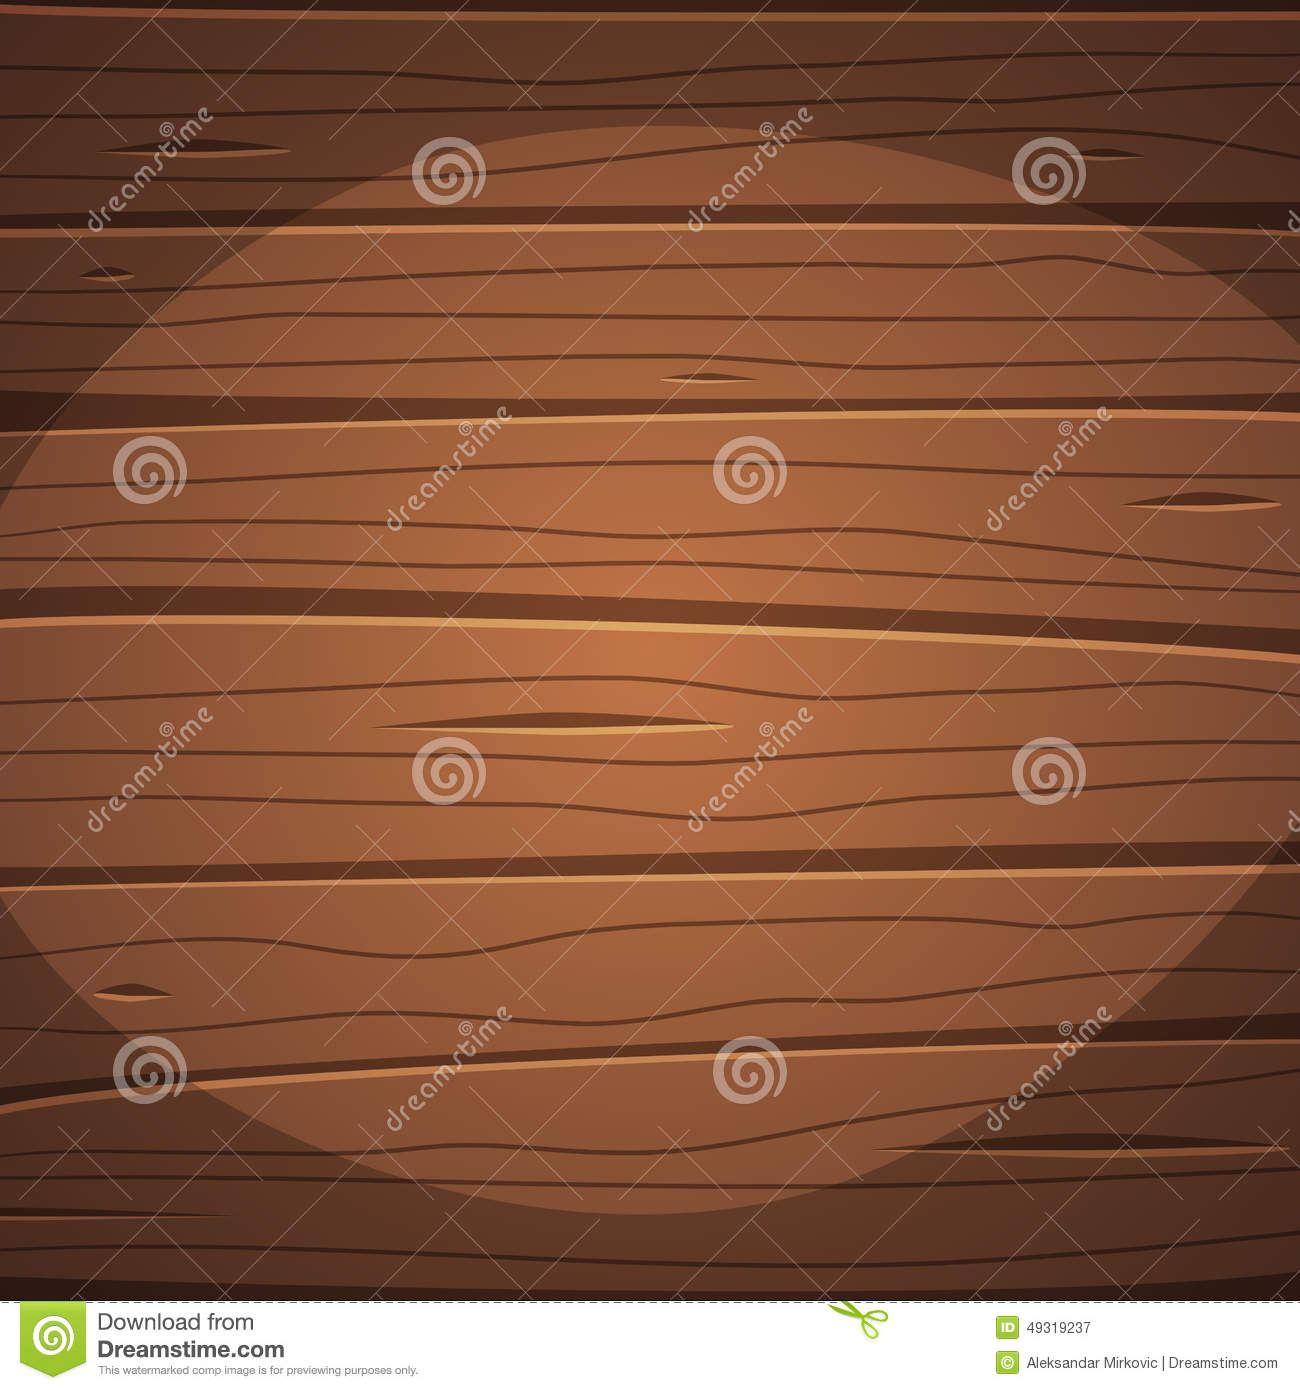 Wooden Plank Cartoon ~ Cartoon wooden surface stock vector illustration of wood